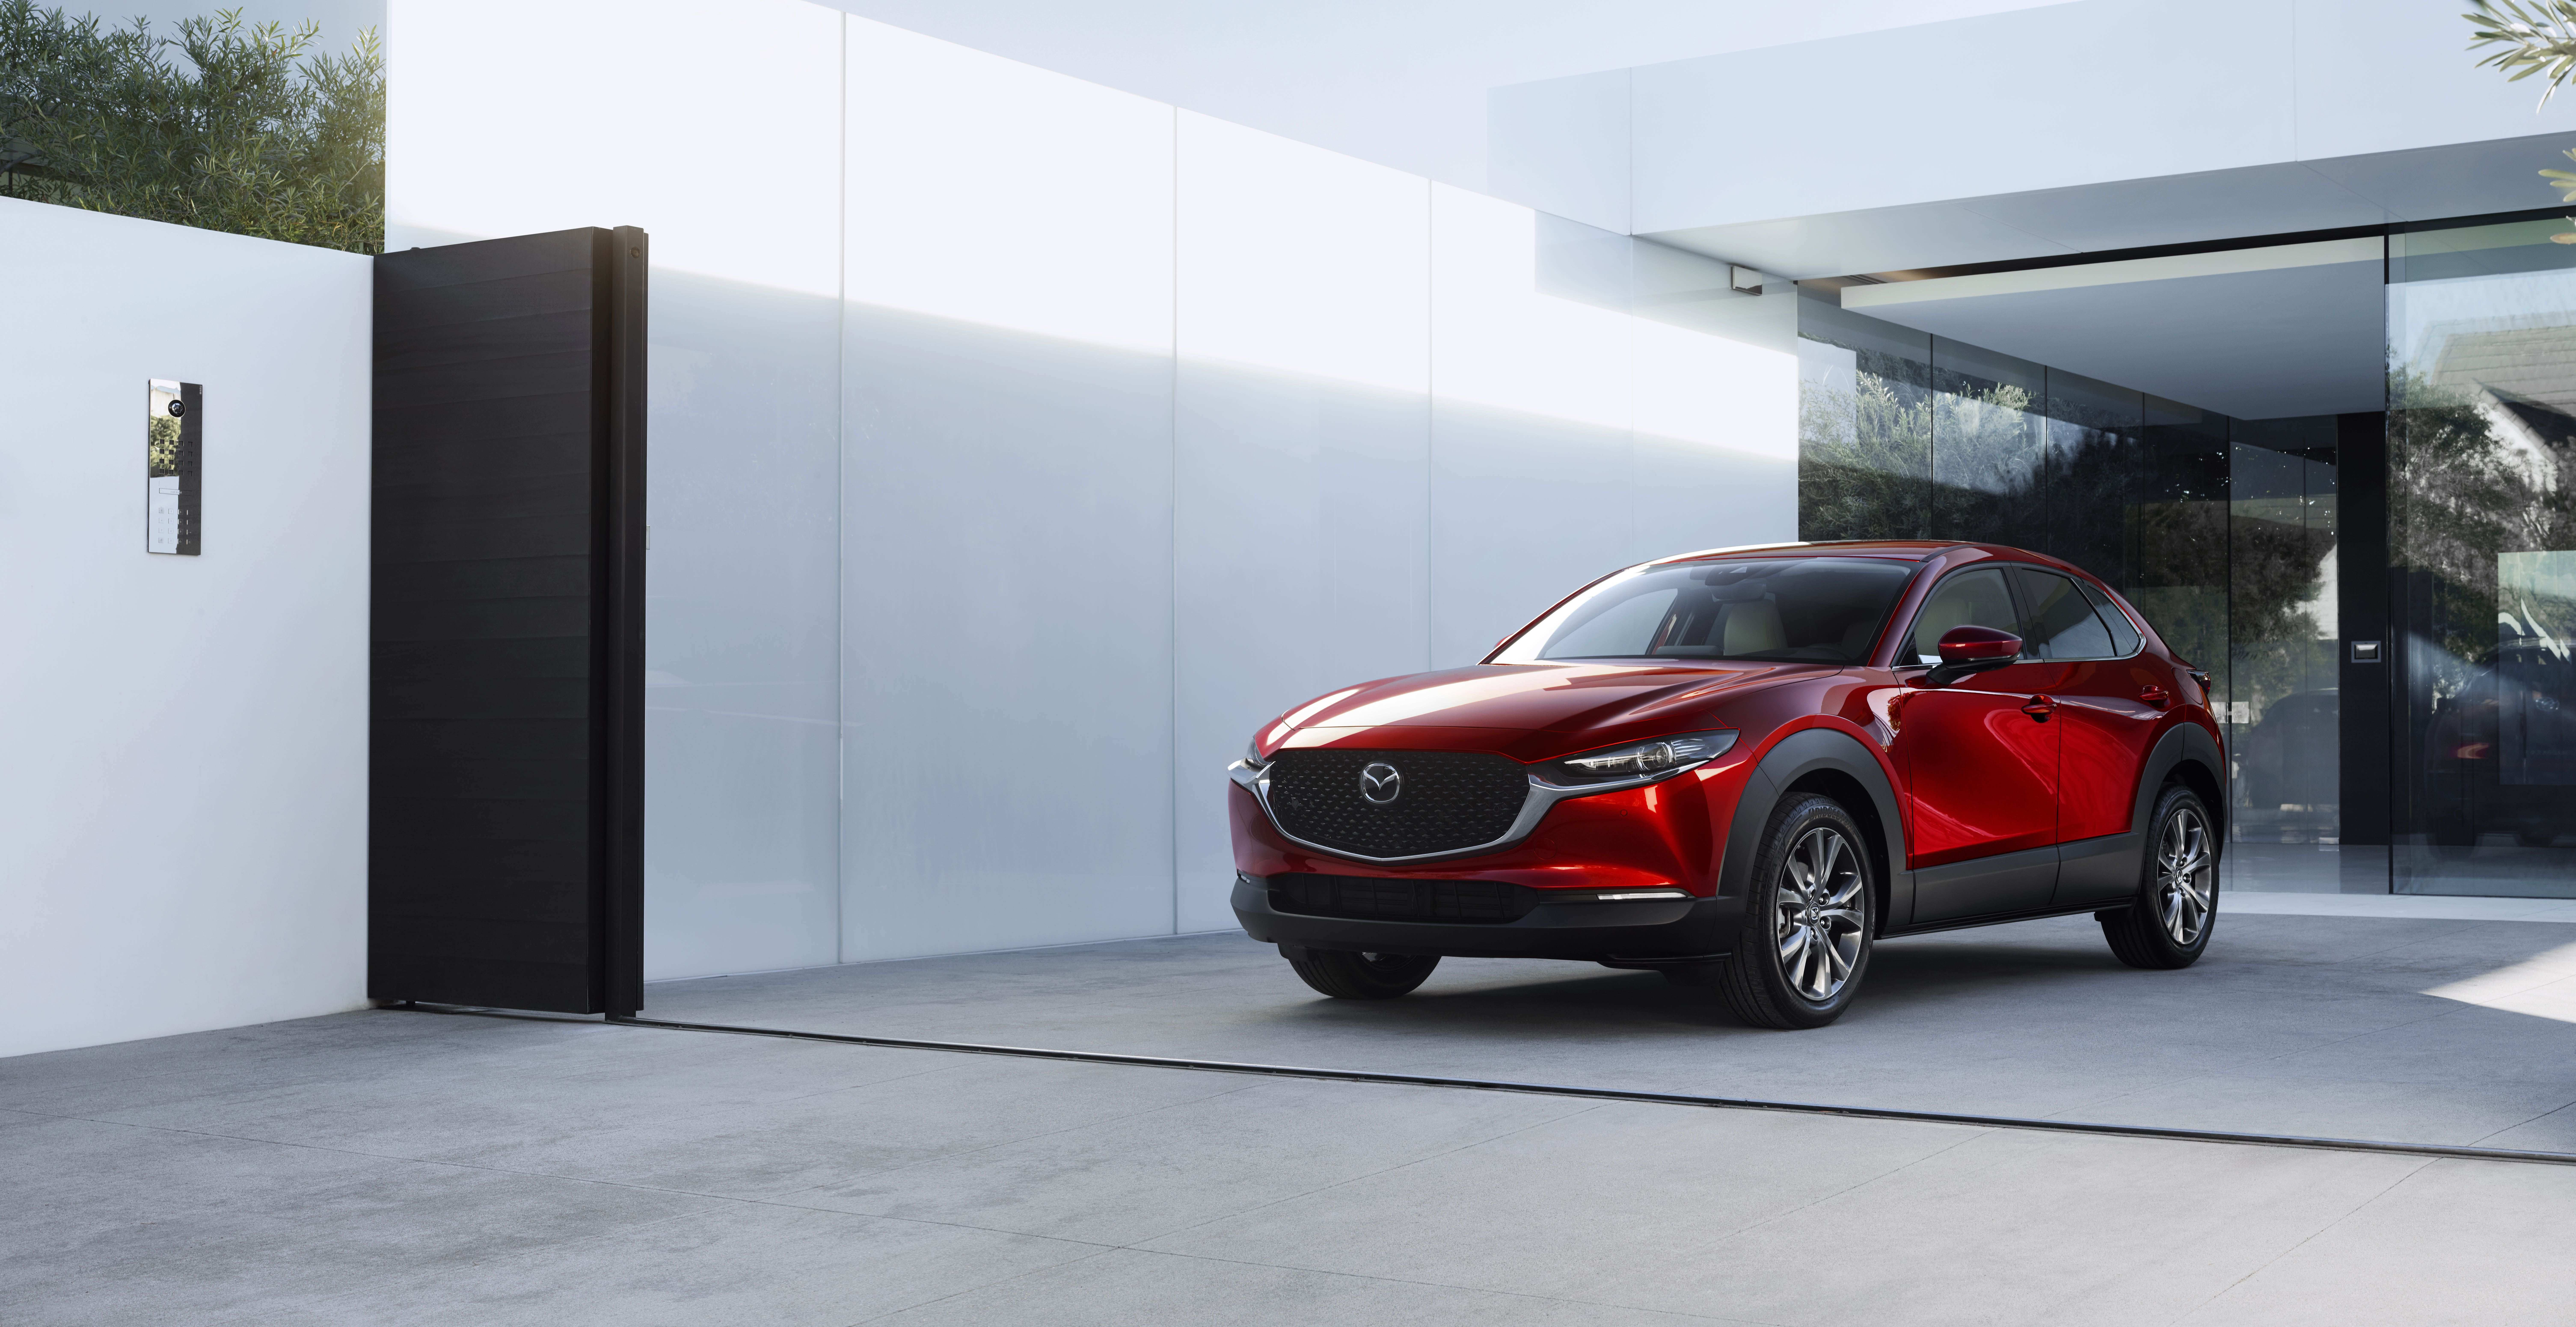 92 All New When Does Mazda Release 2020 Models Picture with When Does Mazda Release 2020 Models